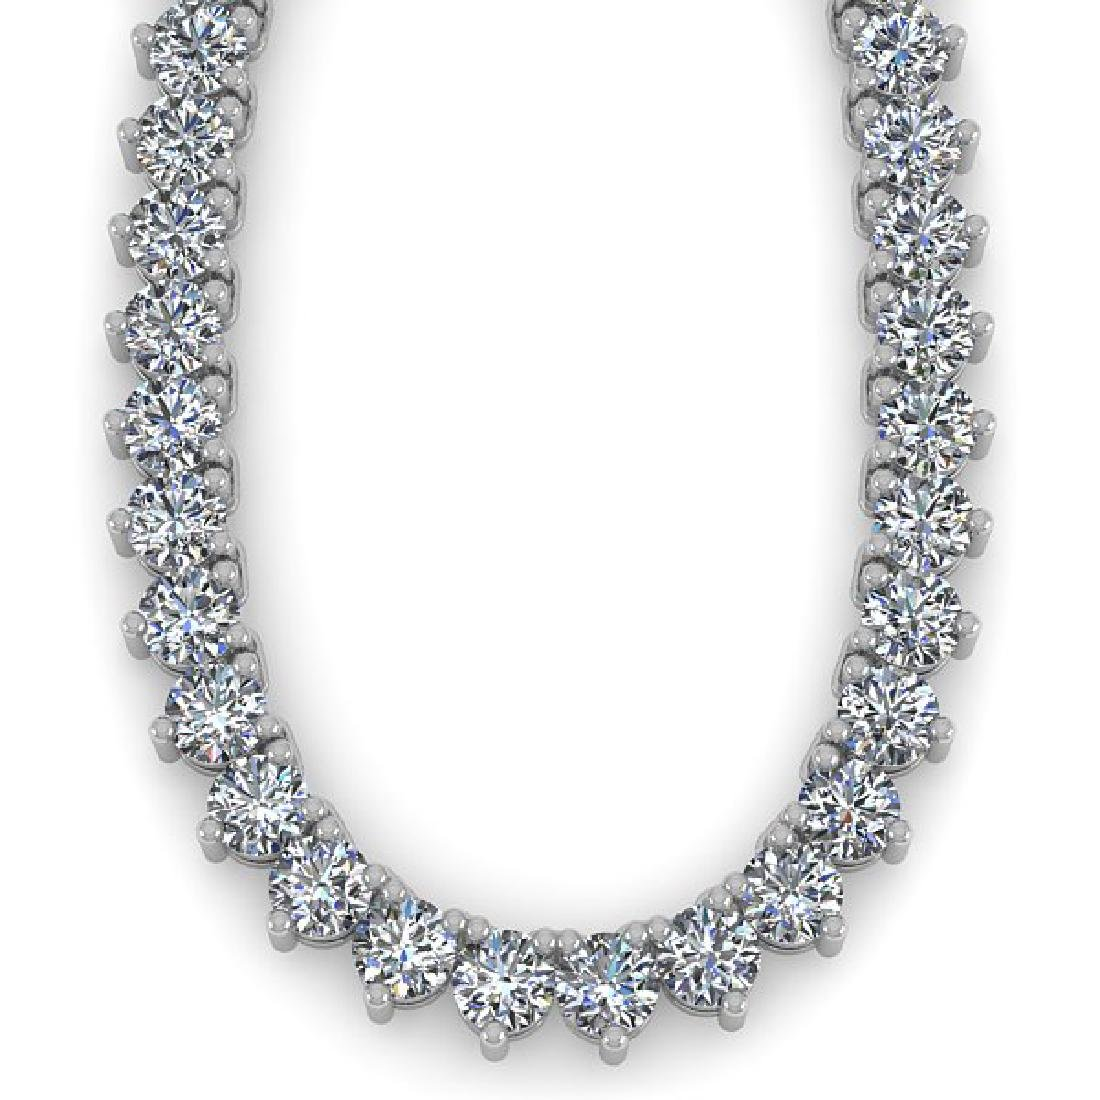 68 CTW Solitaire Certified SI Diamond Necklace 18K - 2